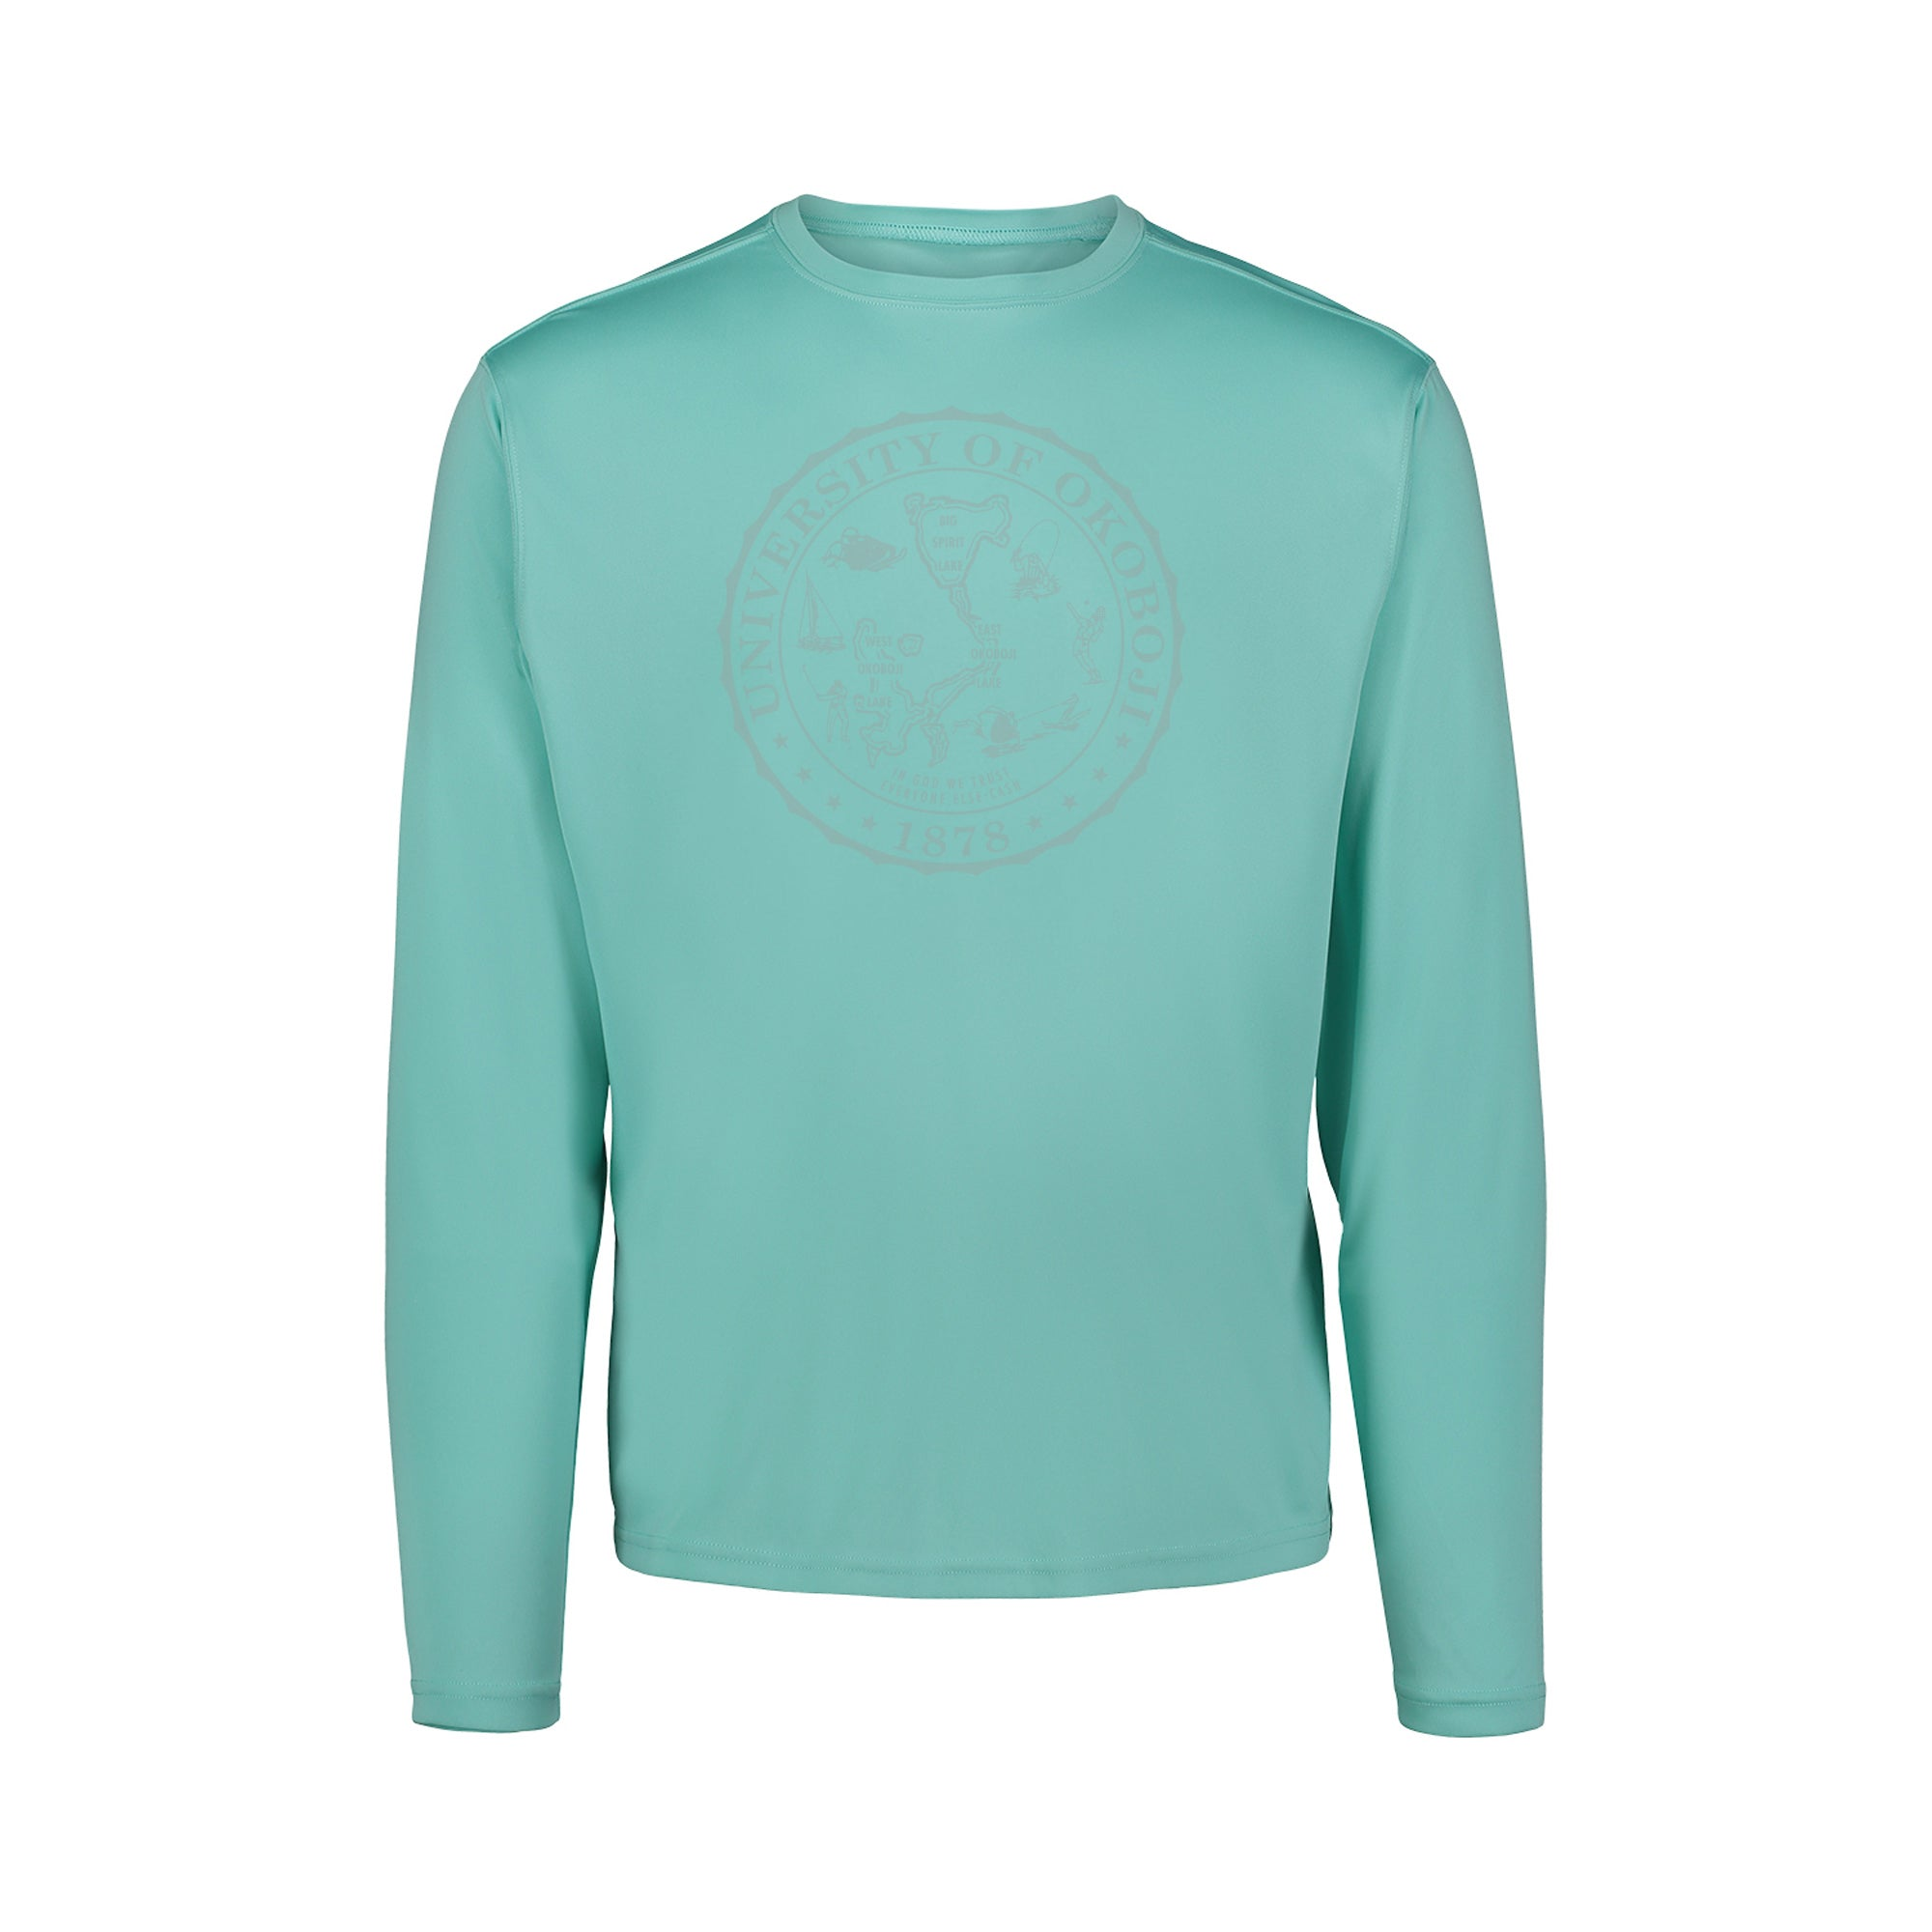 University of Okoboji Sunproof™ Long Sleeve Shirt - Oasis (UPF 50)